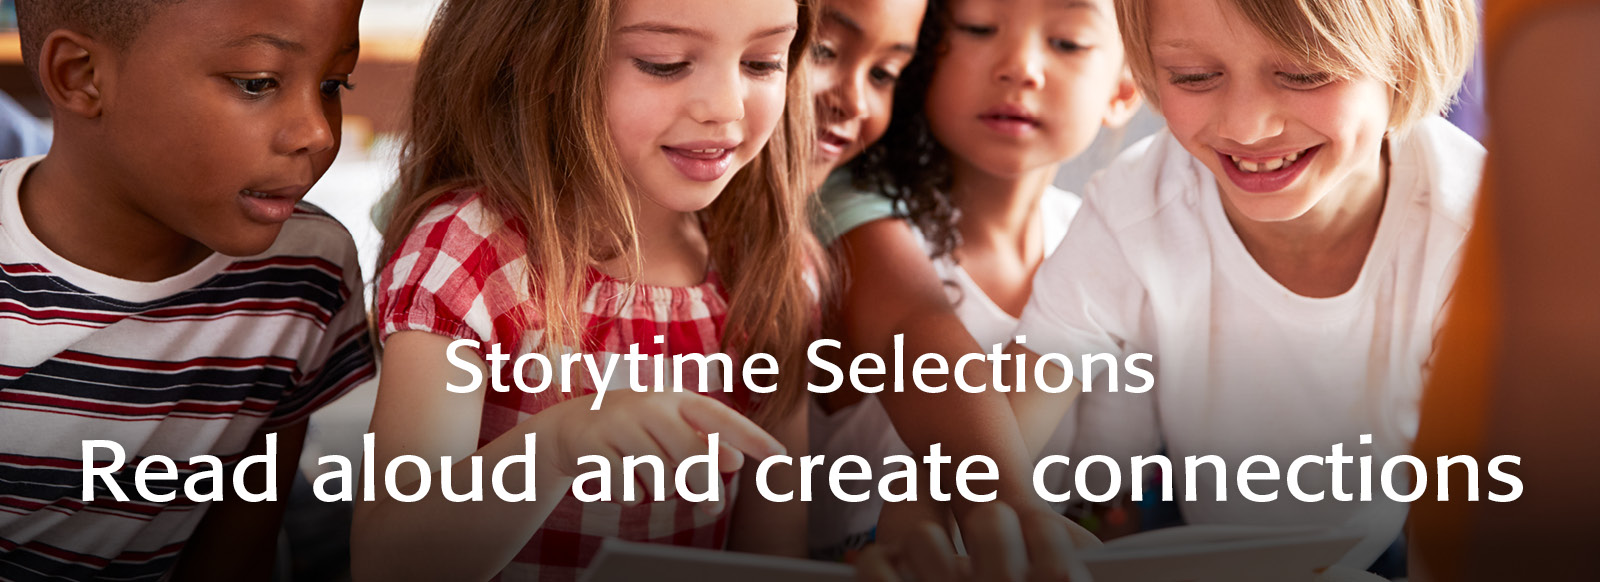 Storytime Selections: Read aloud and create connections